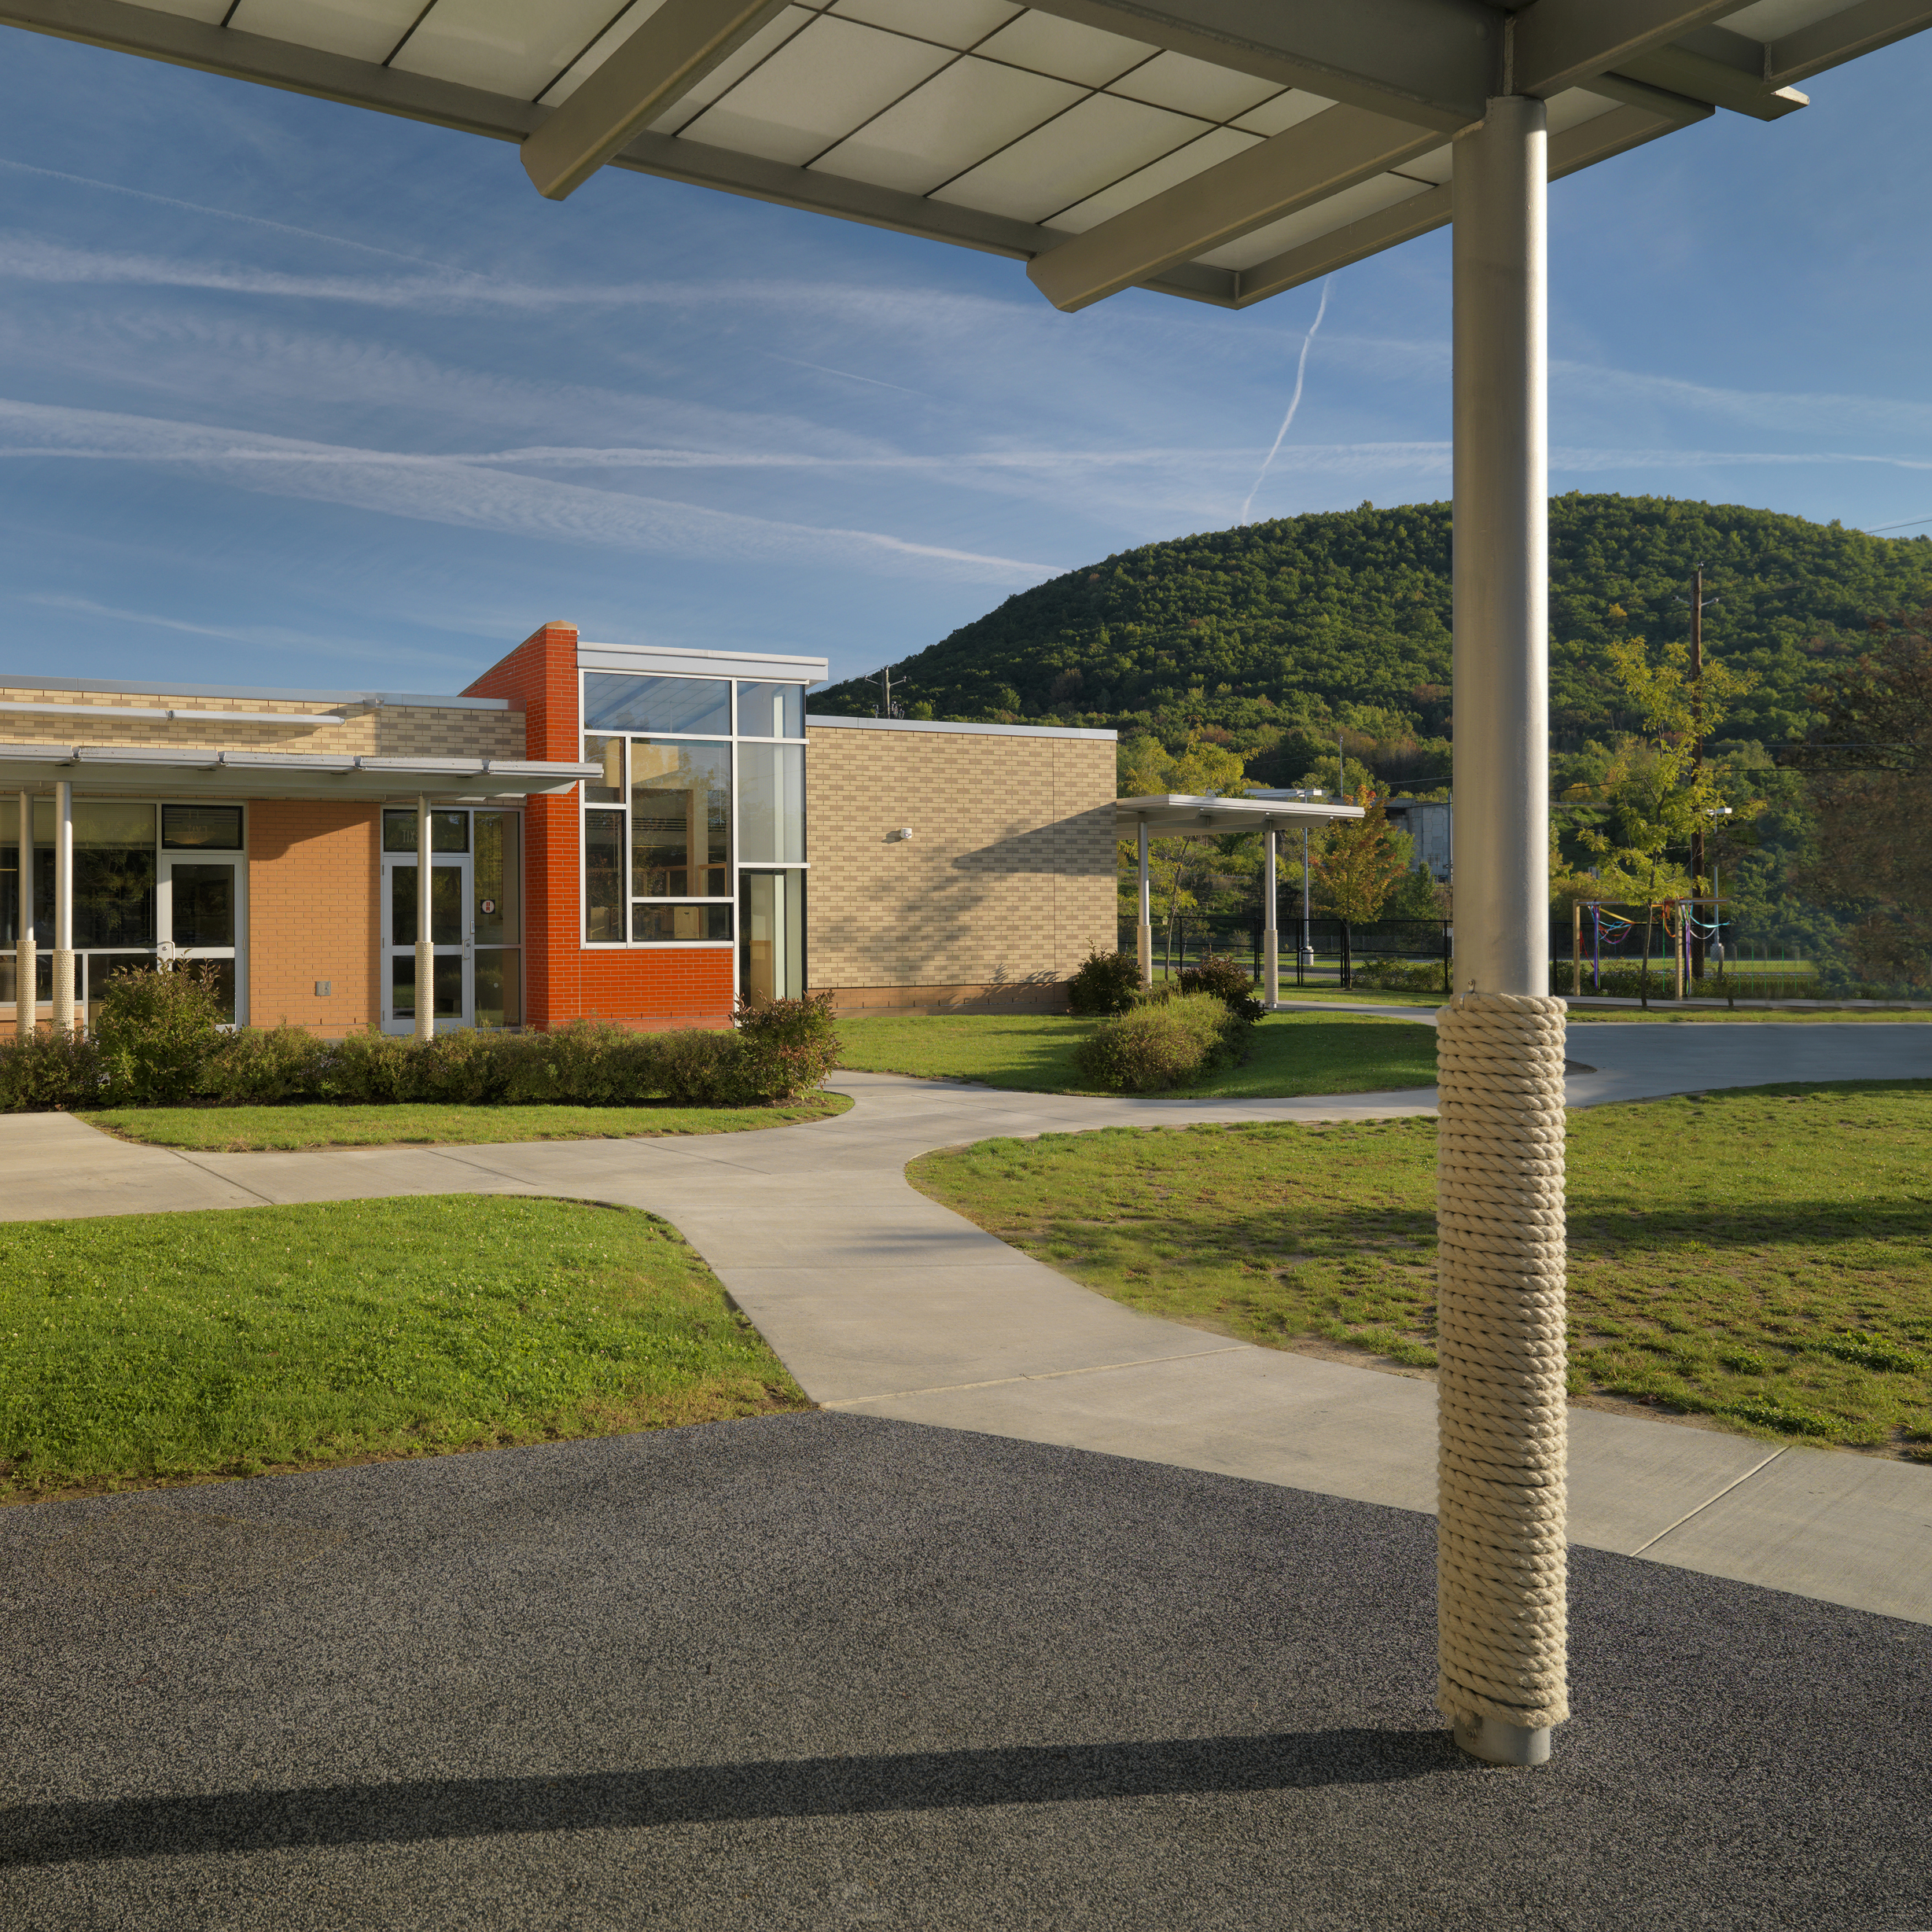 Corning Children's Center